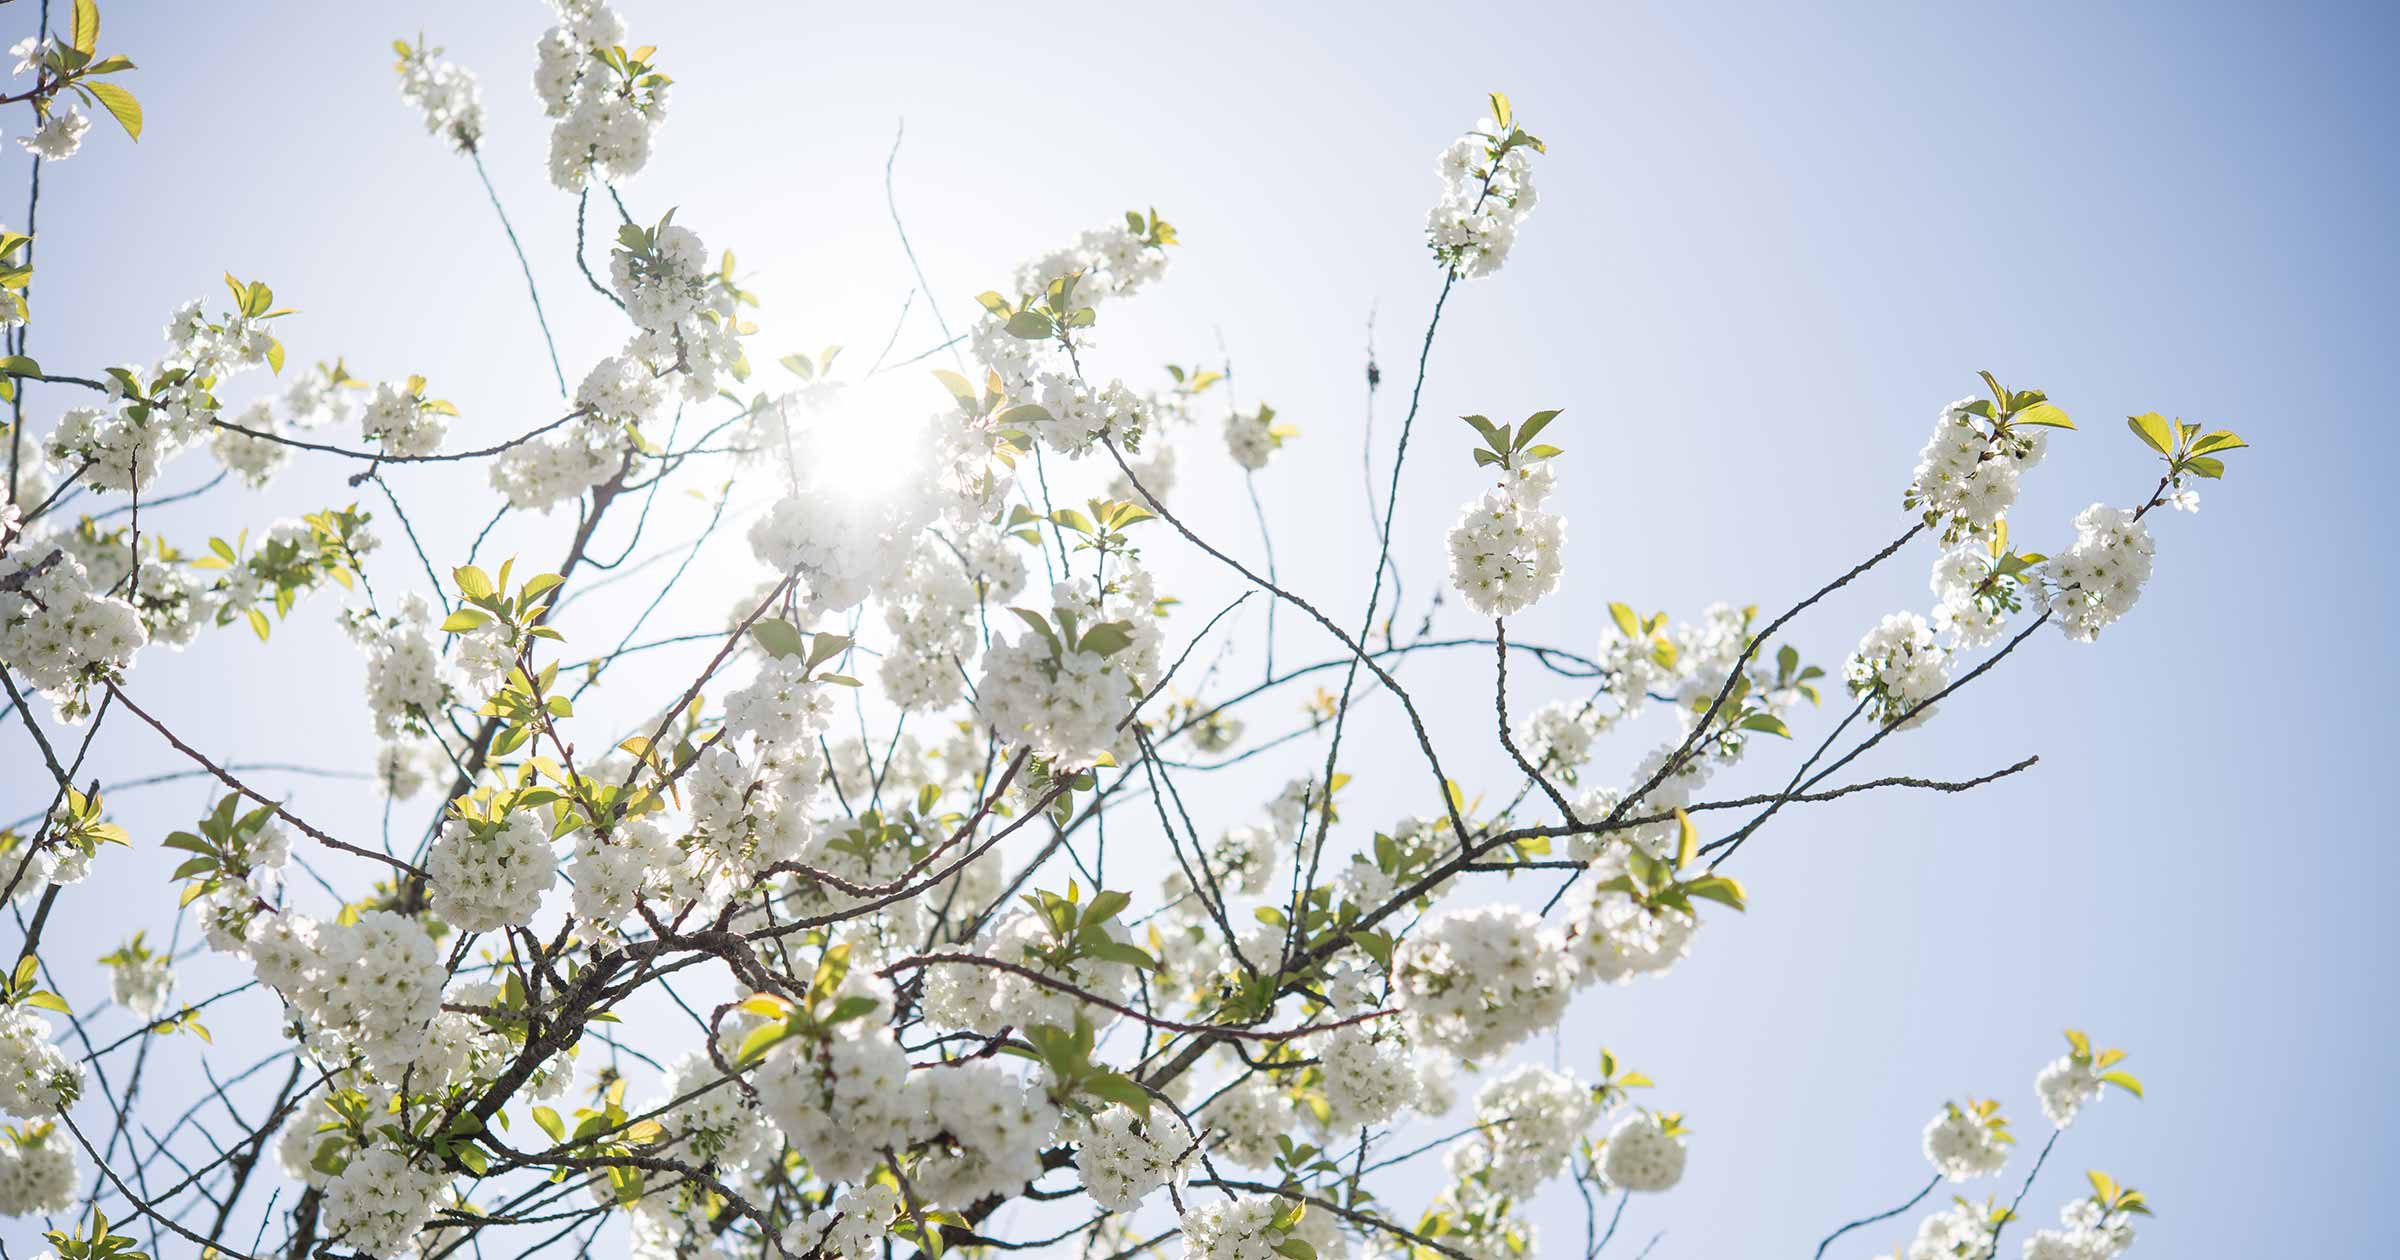 Fruit tree blossoms in front of the sun.